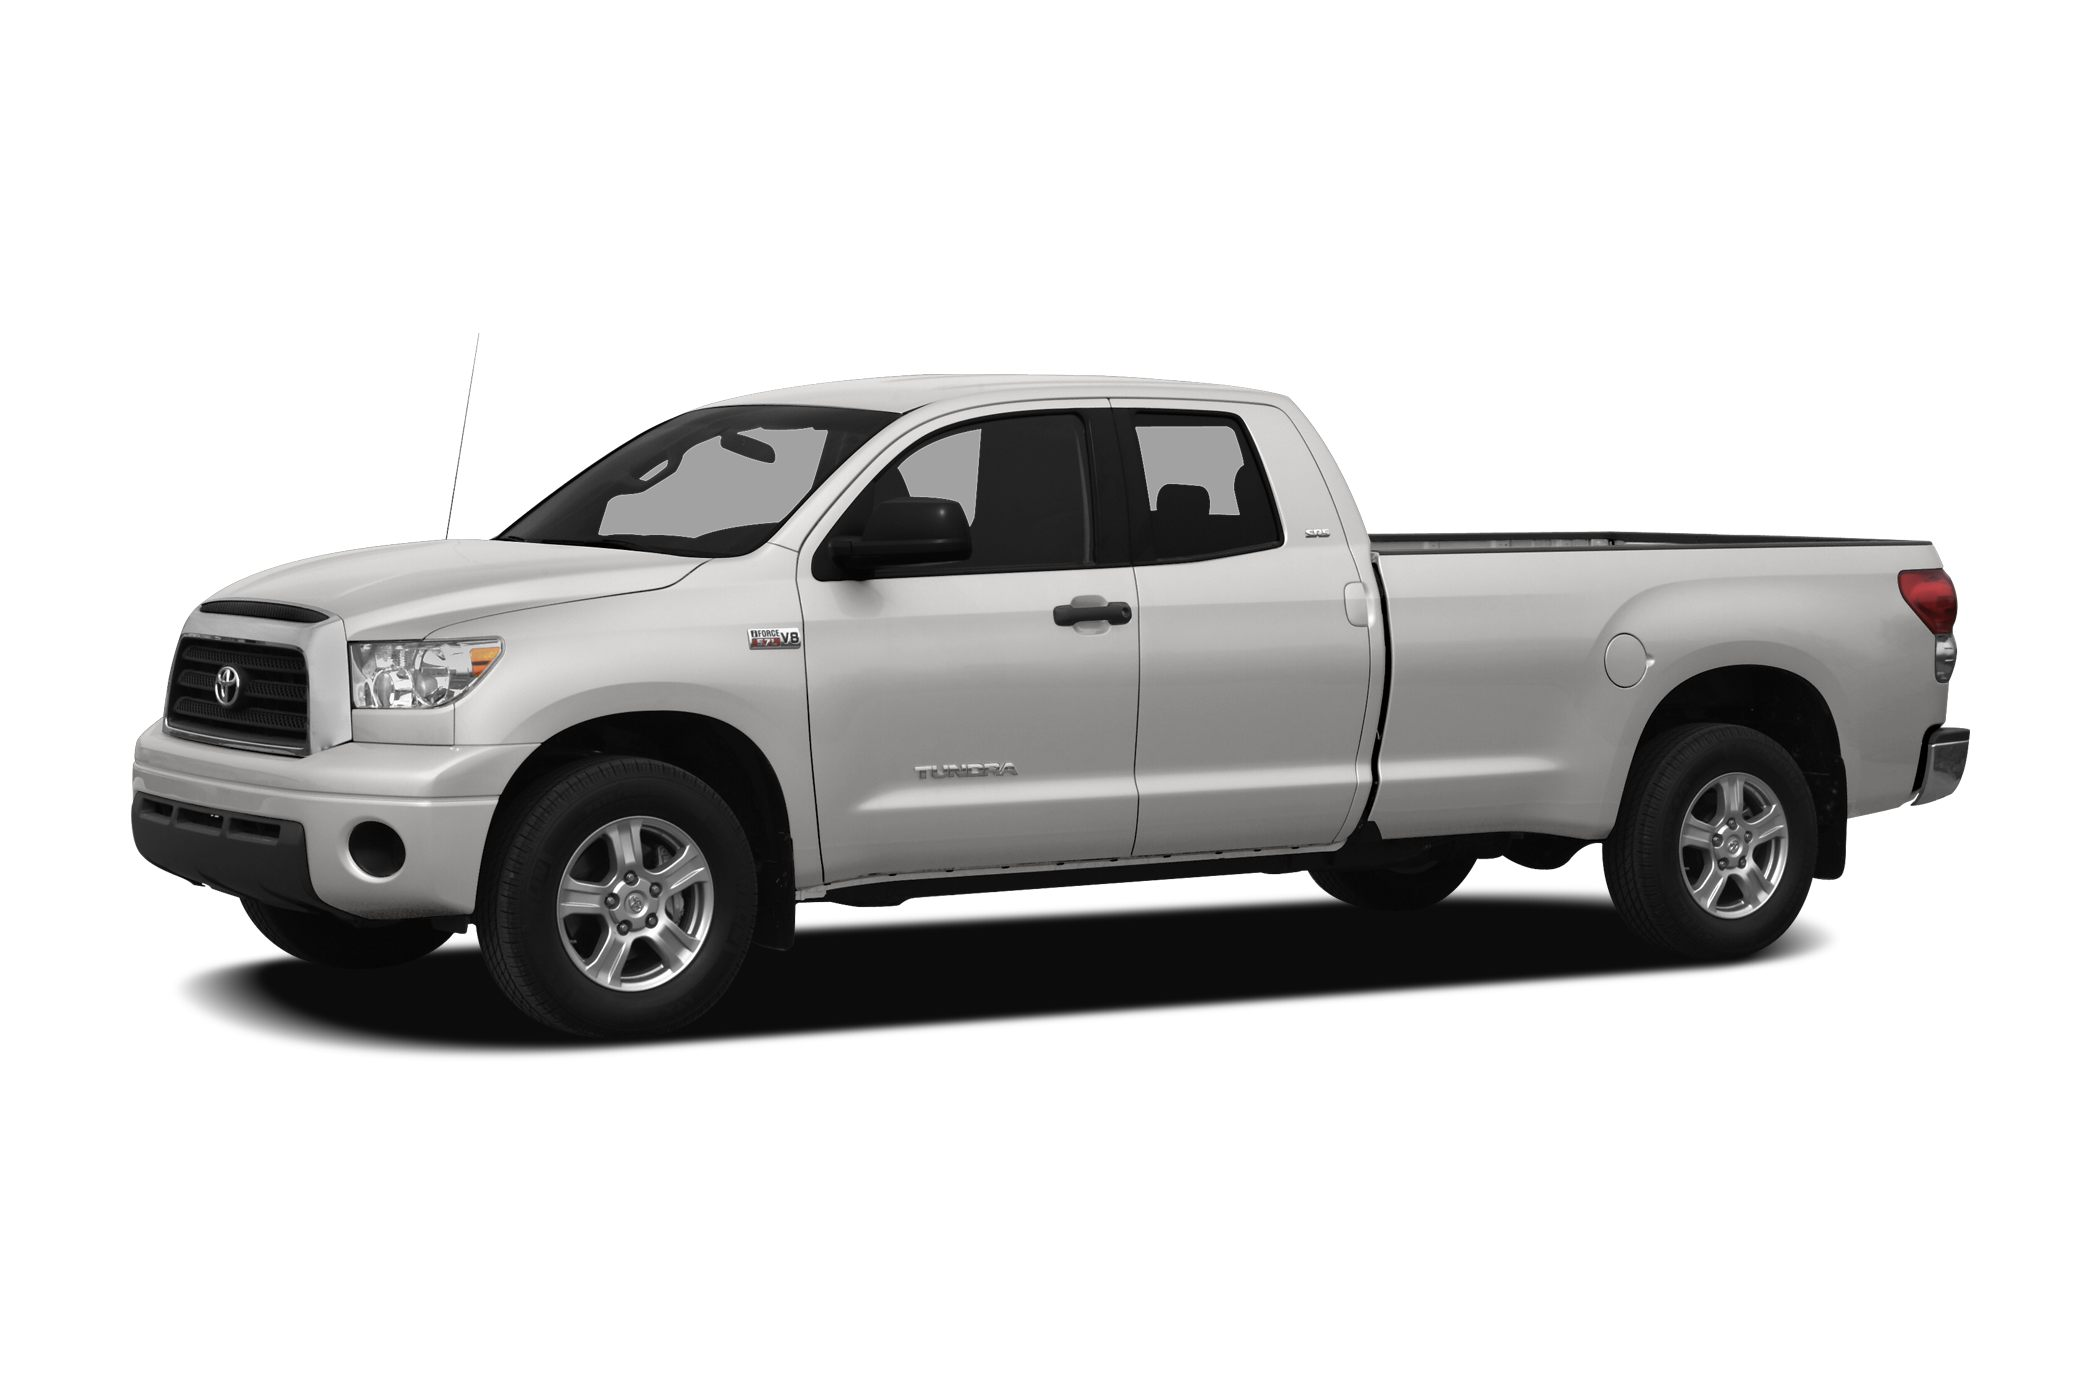 2007 Toyota Tundra SR5 This is the truck that everyone seems to want Powerful stylish and more